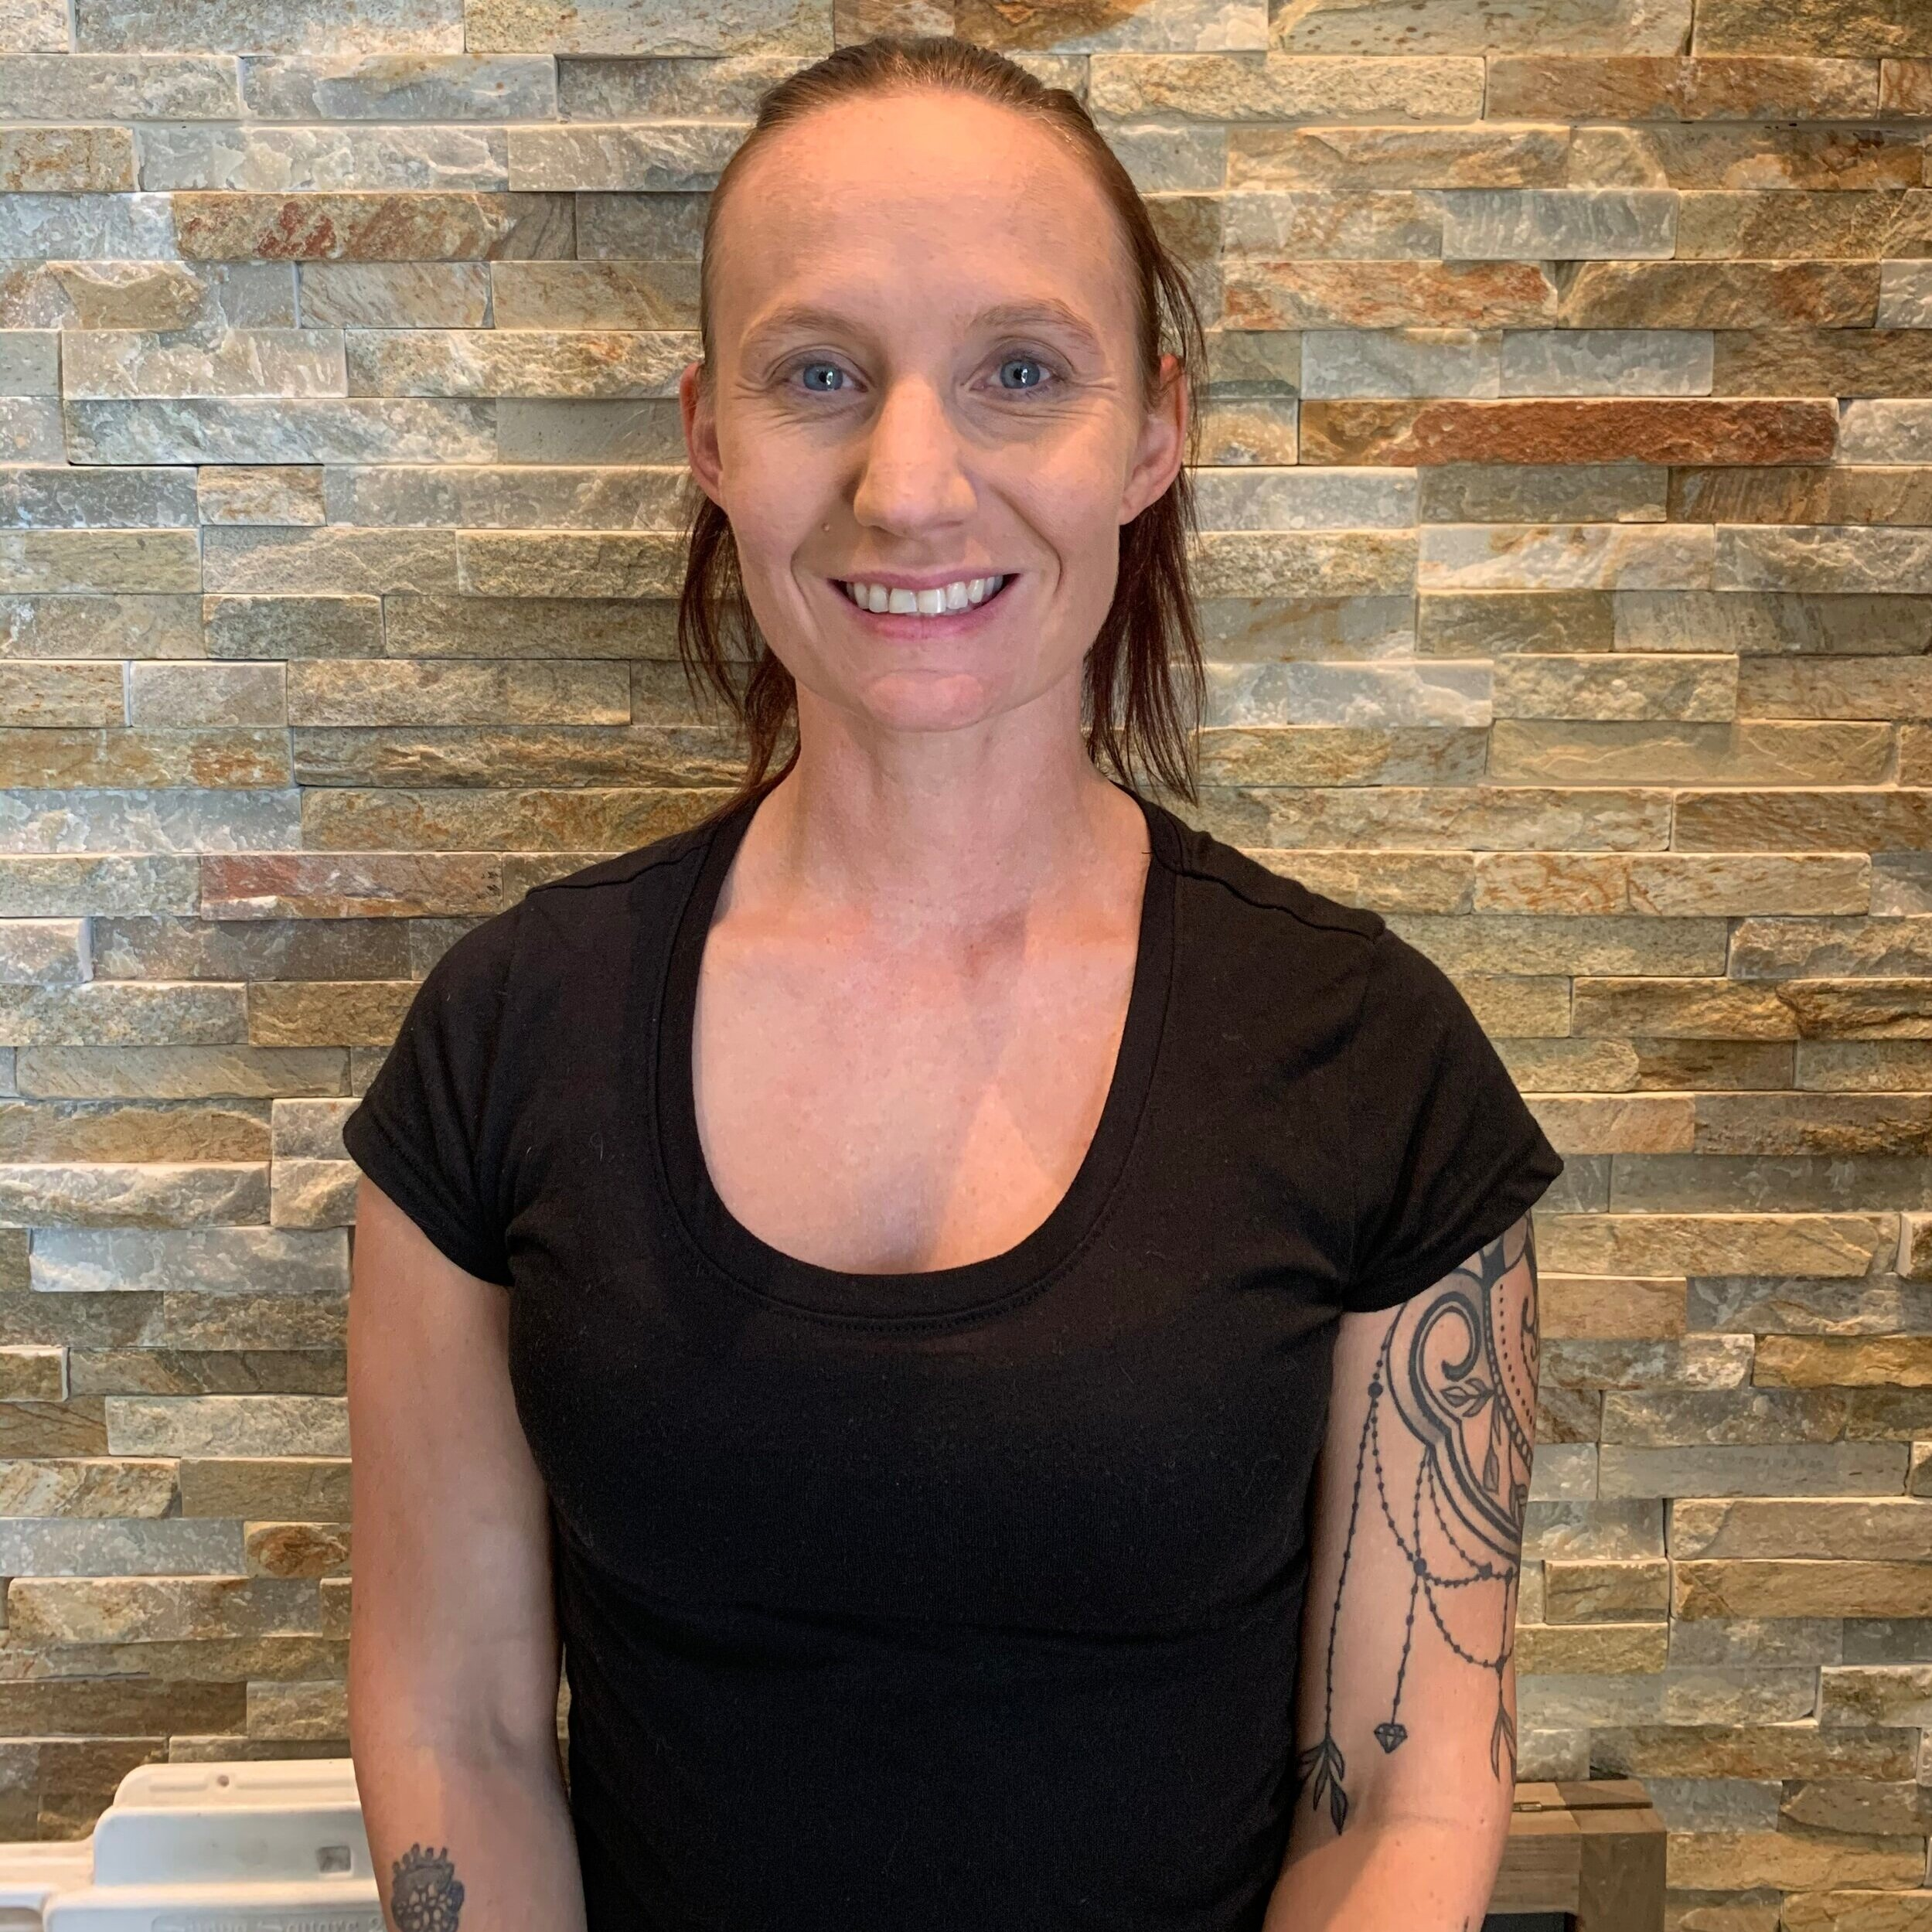 Cheyenne - Certified TherapistCheyenne is a holistic health practitioner that aims to customize every massage to the clients needs. She specializes in passive joint movement, sports therapy, and orthopedic massage to help active people stay active! She also works with geriatric to help keep the body in motion. Cheyenne aims to have every client walking out with a smile.